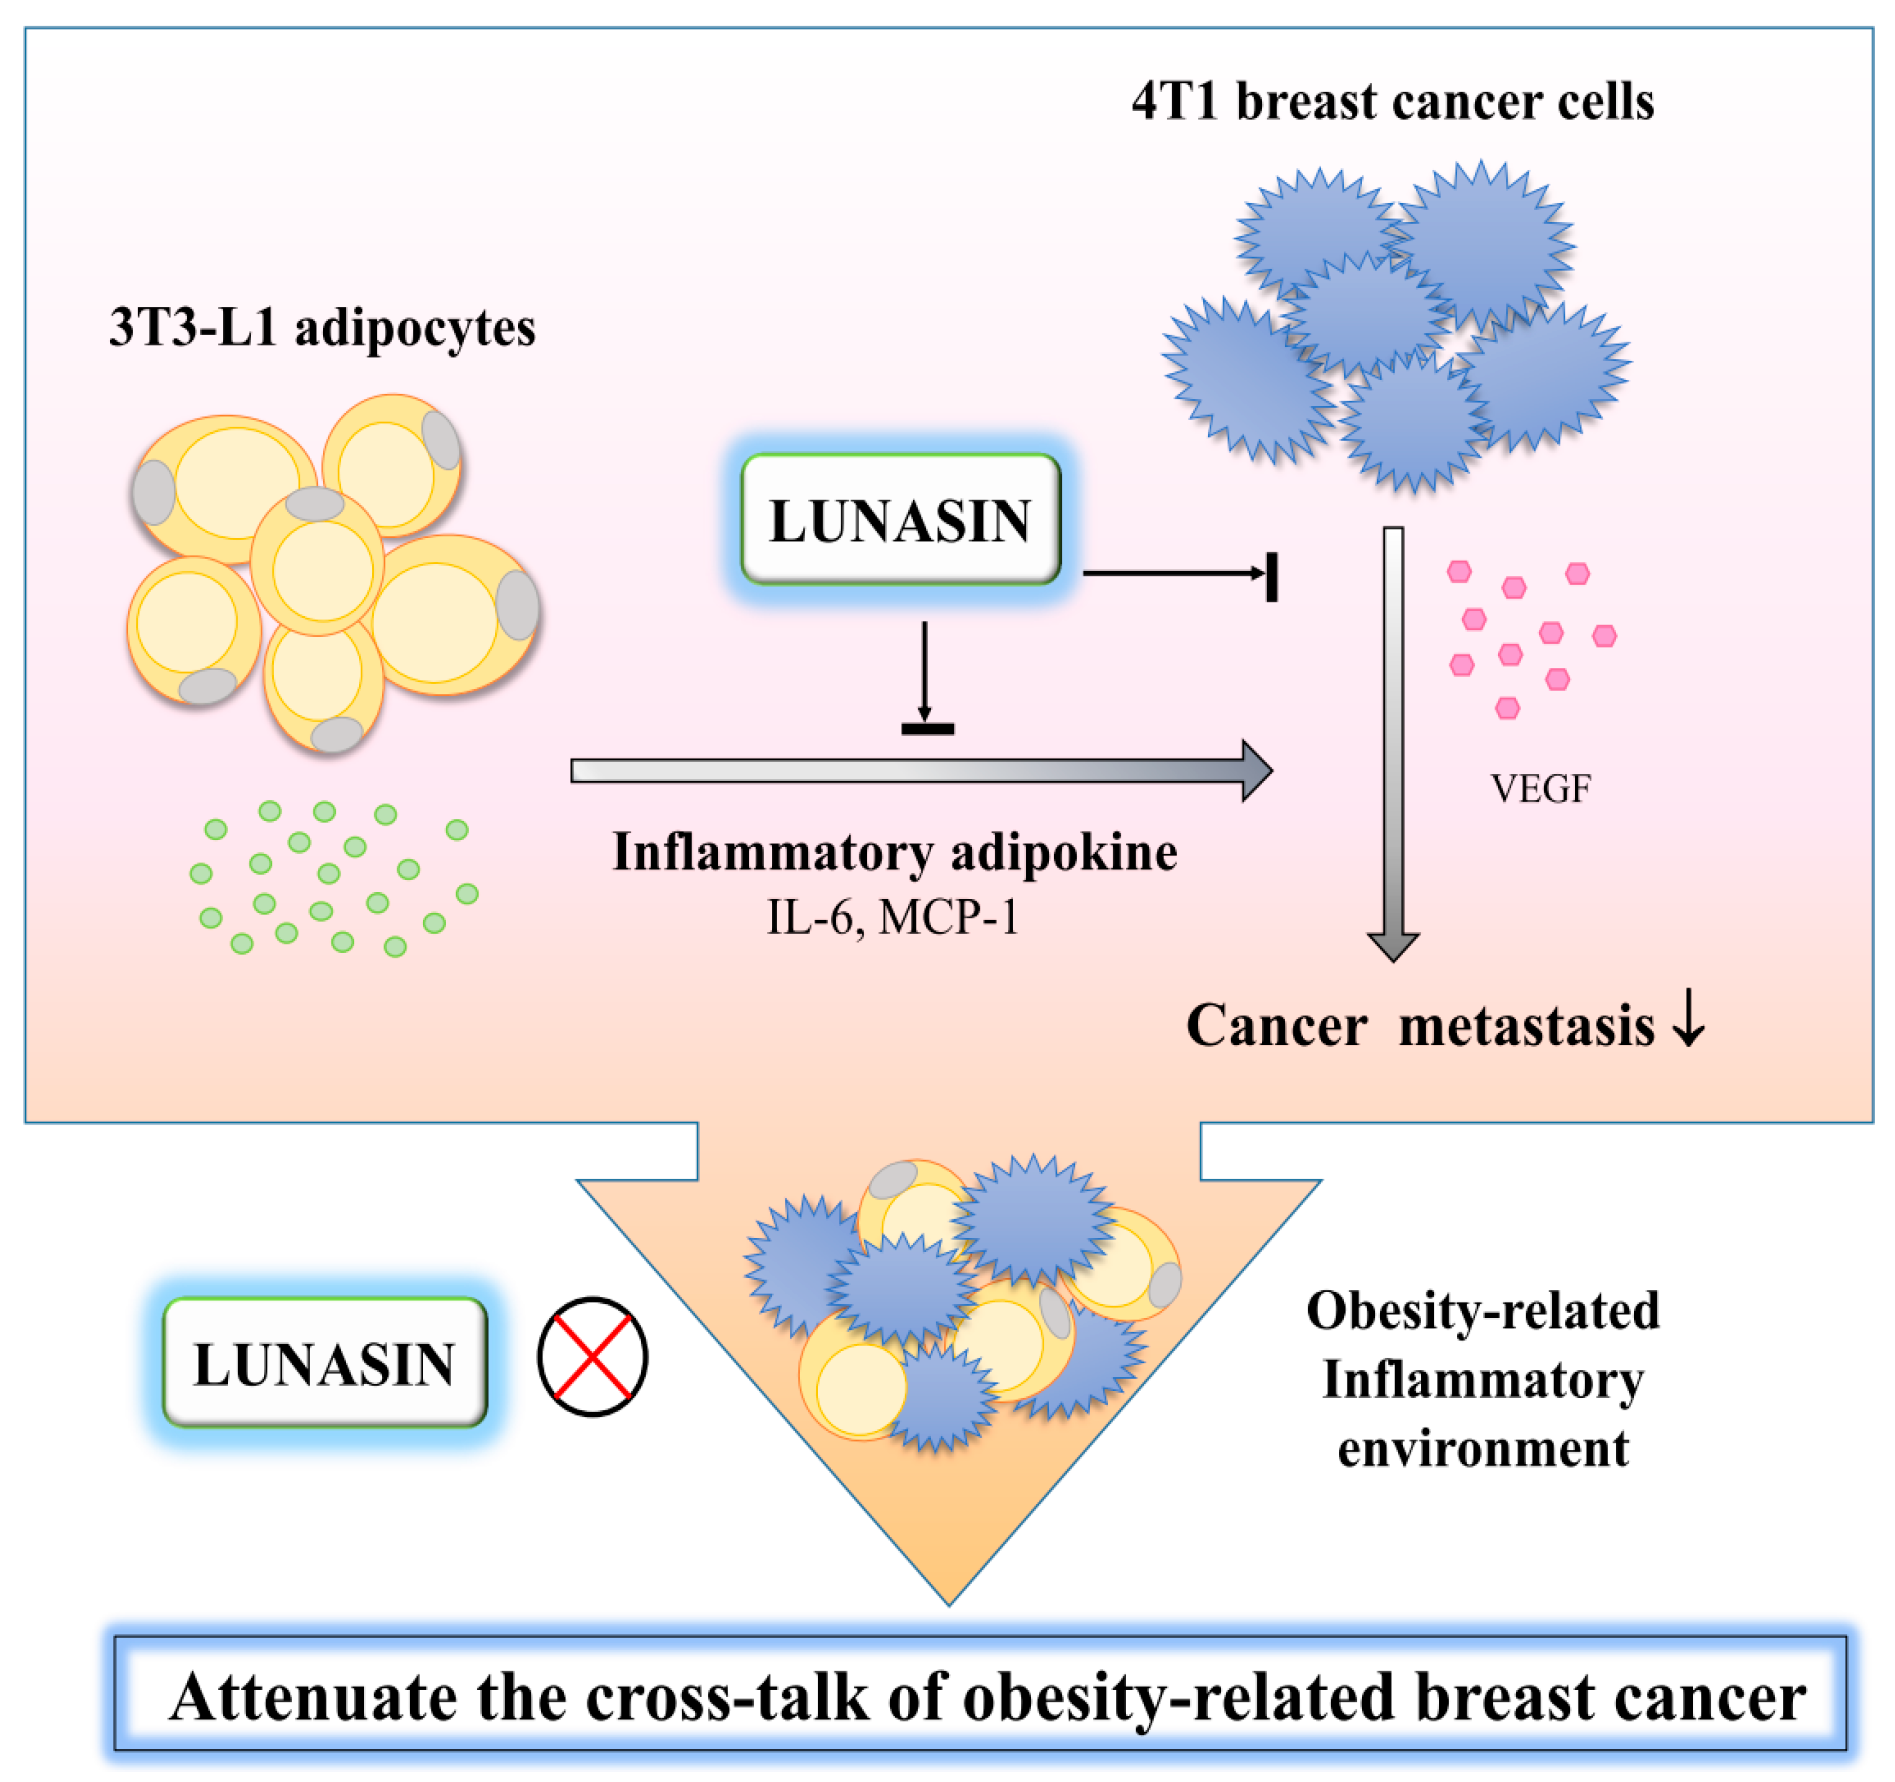 Ijms Free Full Text Lunasin Attenuates Obesity Associated Metastasis Of 4t1 Breast Cancer Cell Through Anti Inflammatory Property